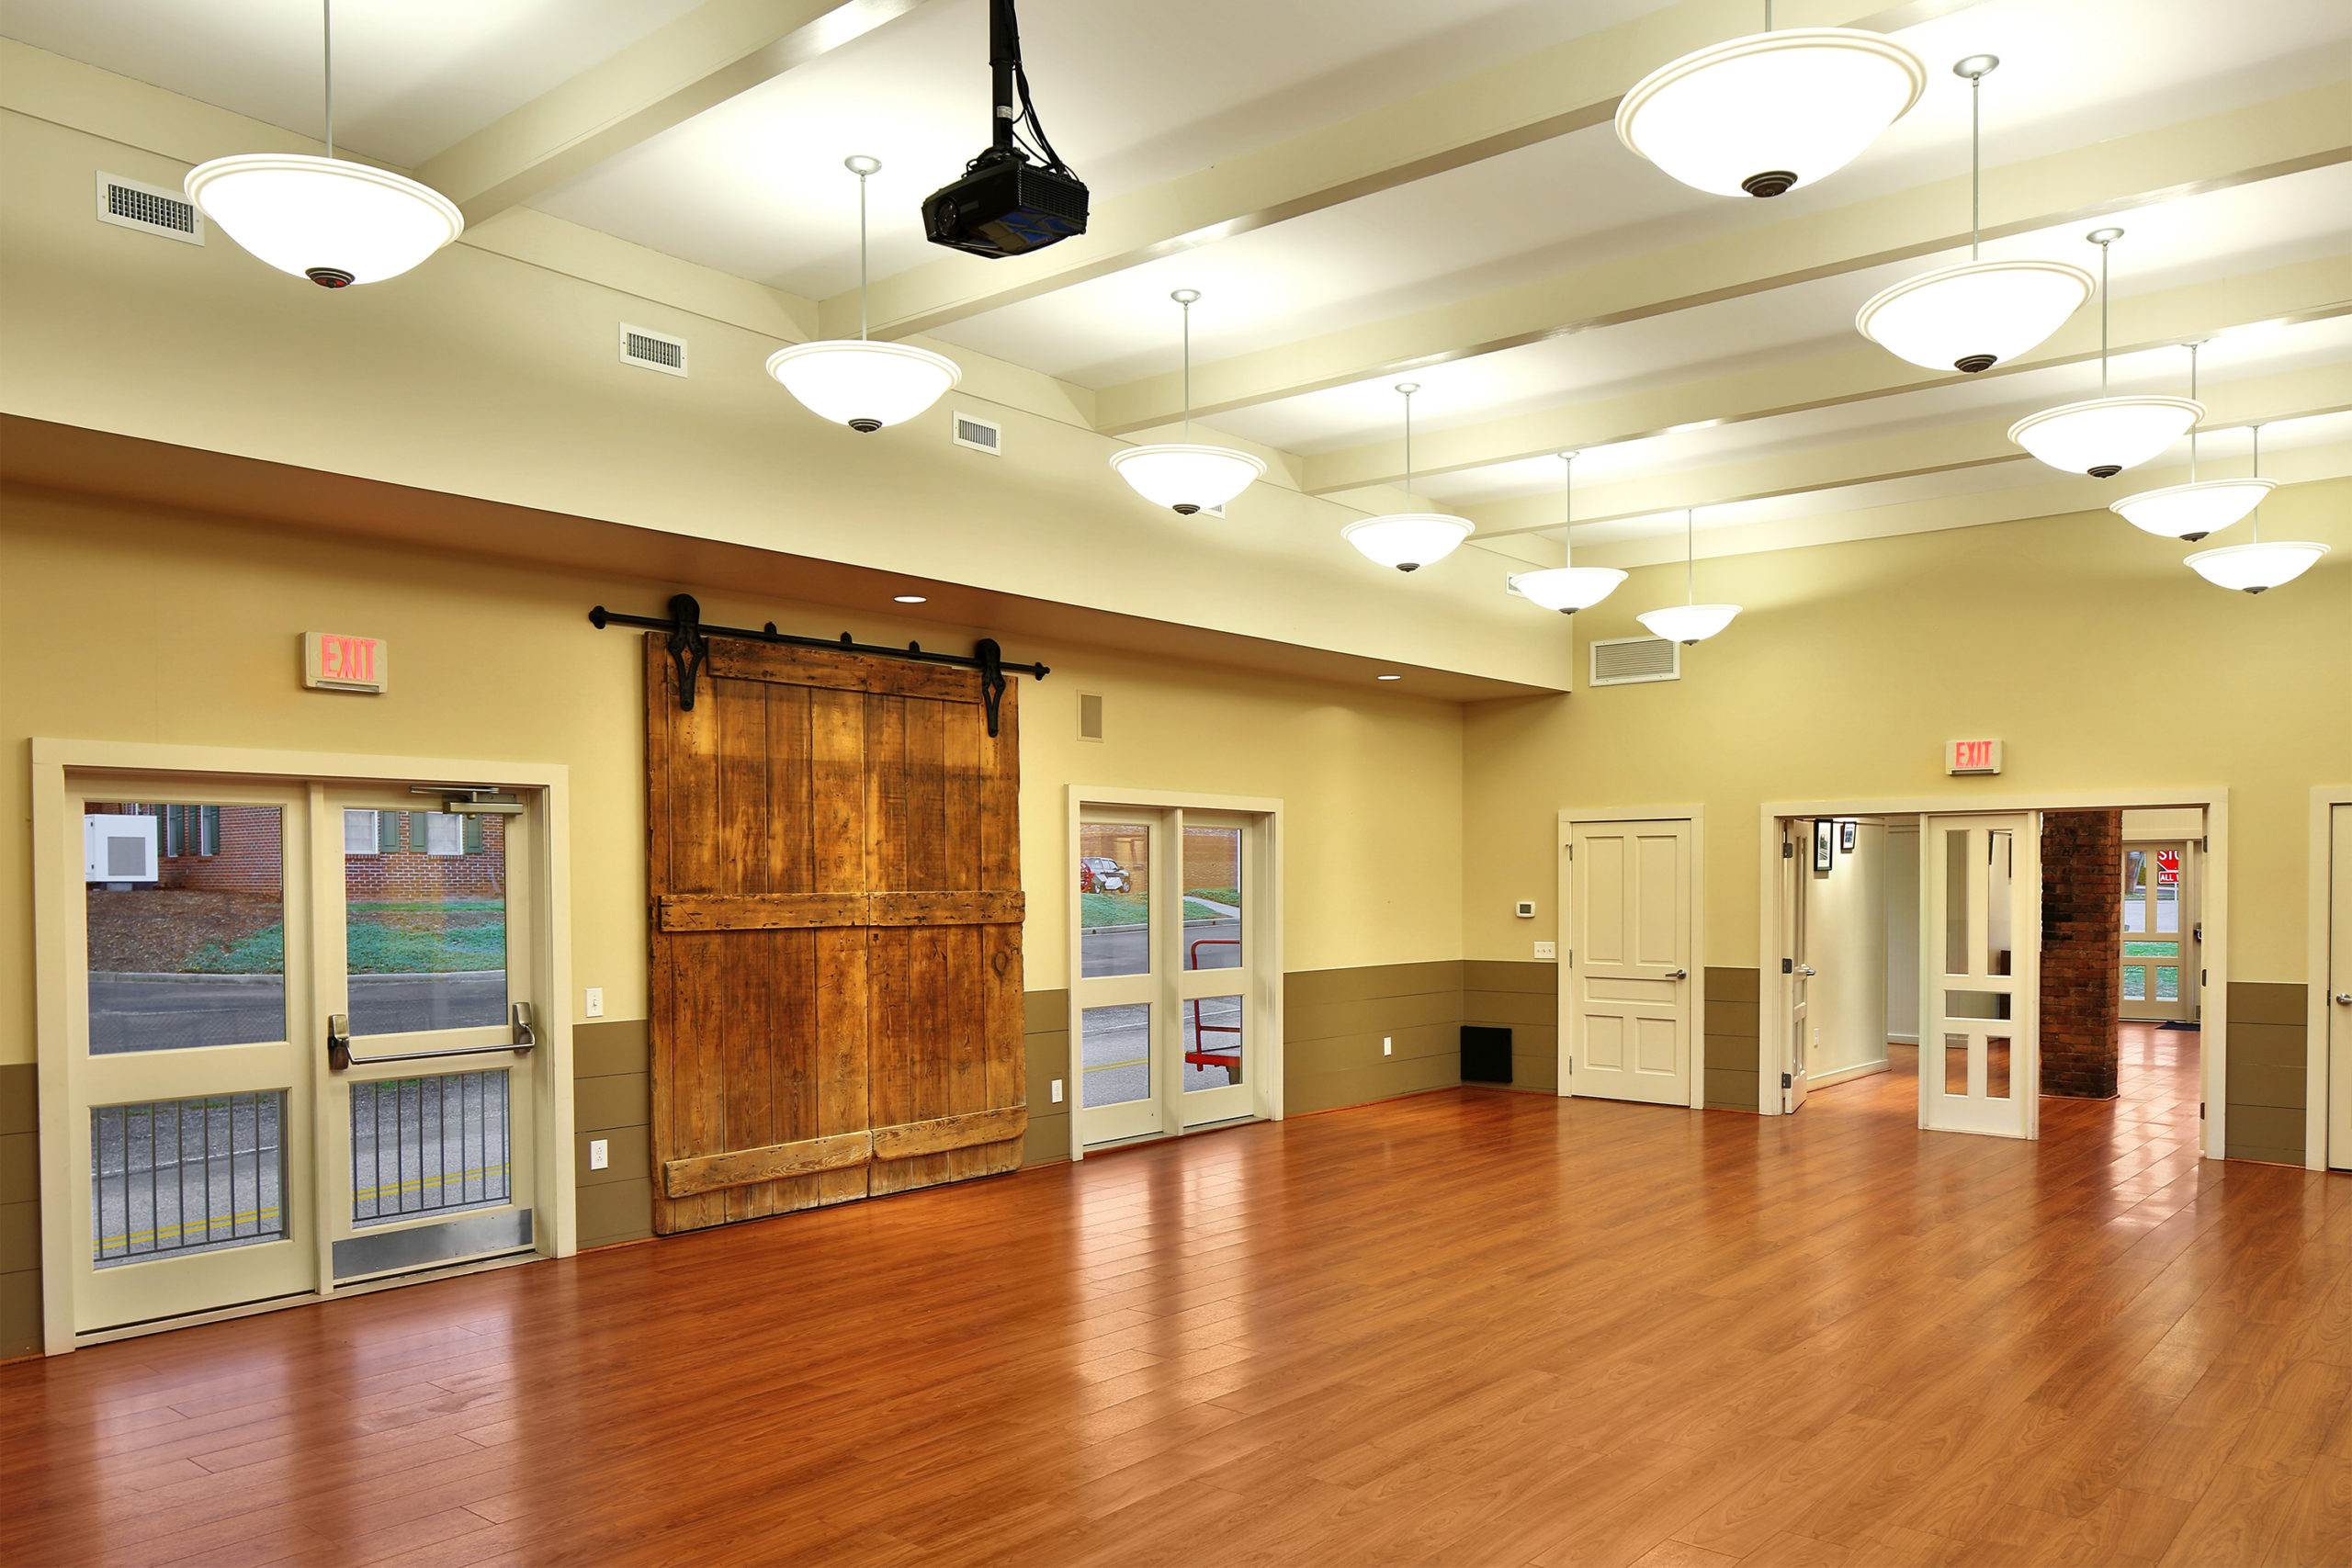 The Landrum Railroad Depot community room with the original freight doors on display.